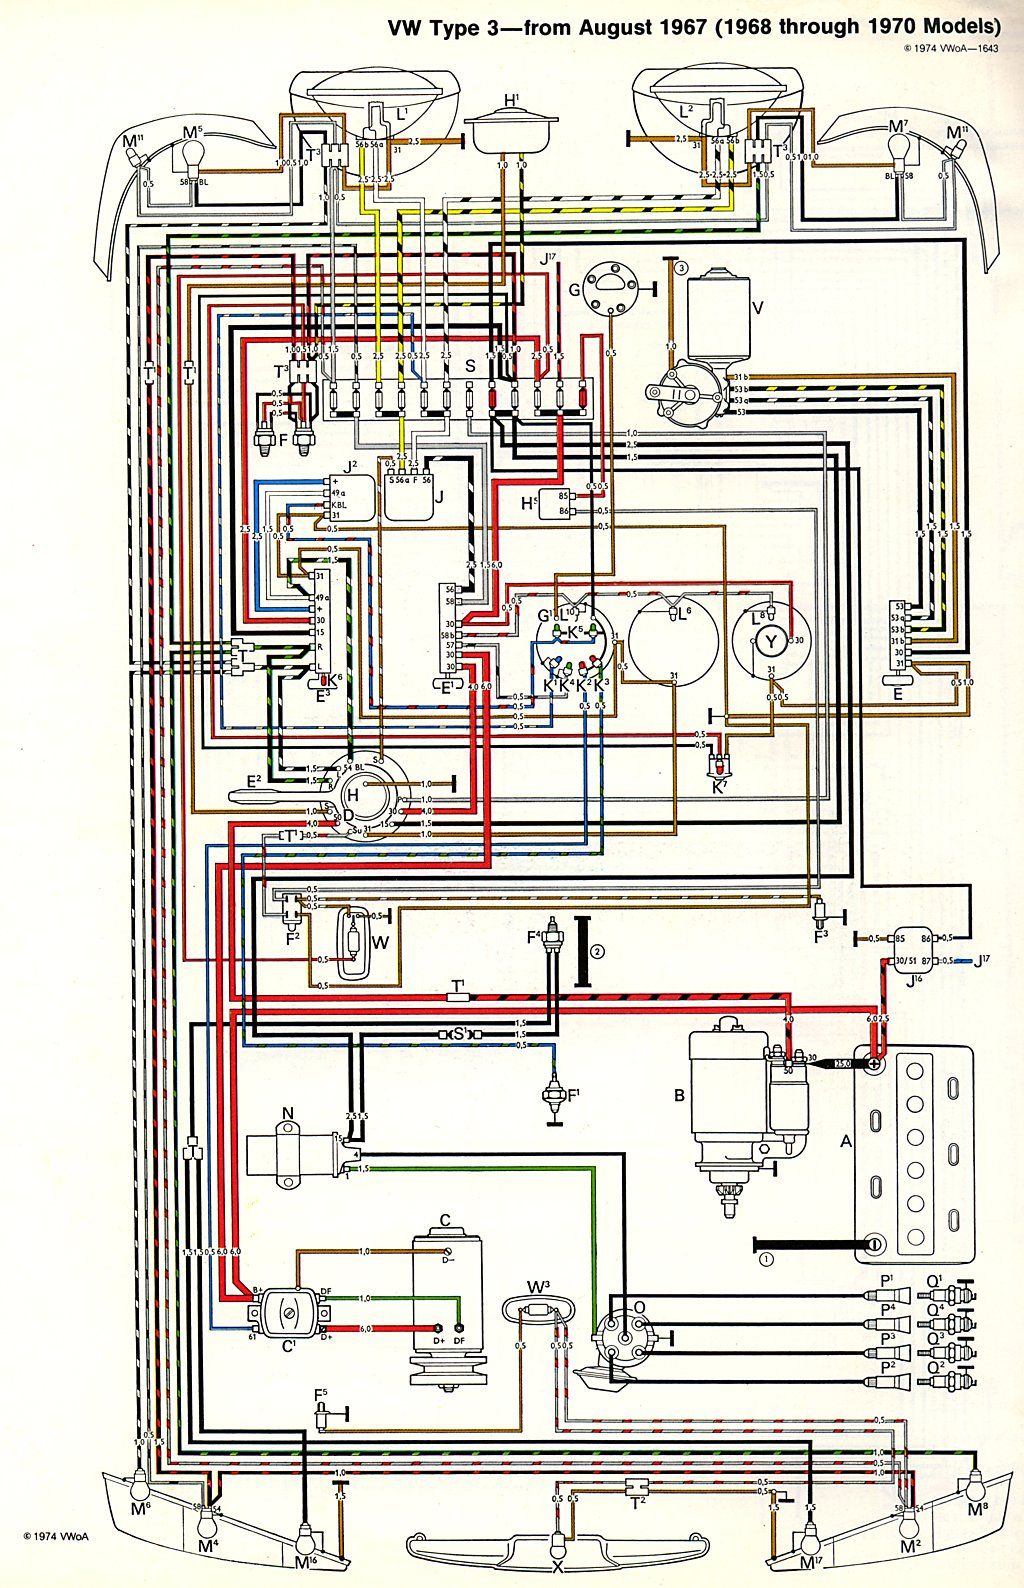 thesamba com type 3 wiring diagrams rh thesamba com 1964 Type 3 Wiring Diagram 1971 vw type 3 wiring diagram